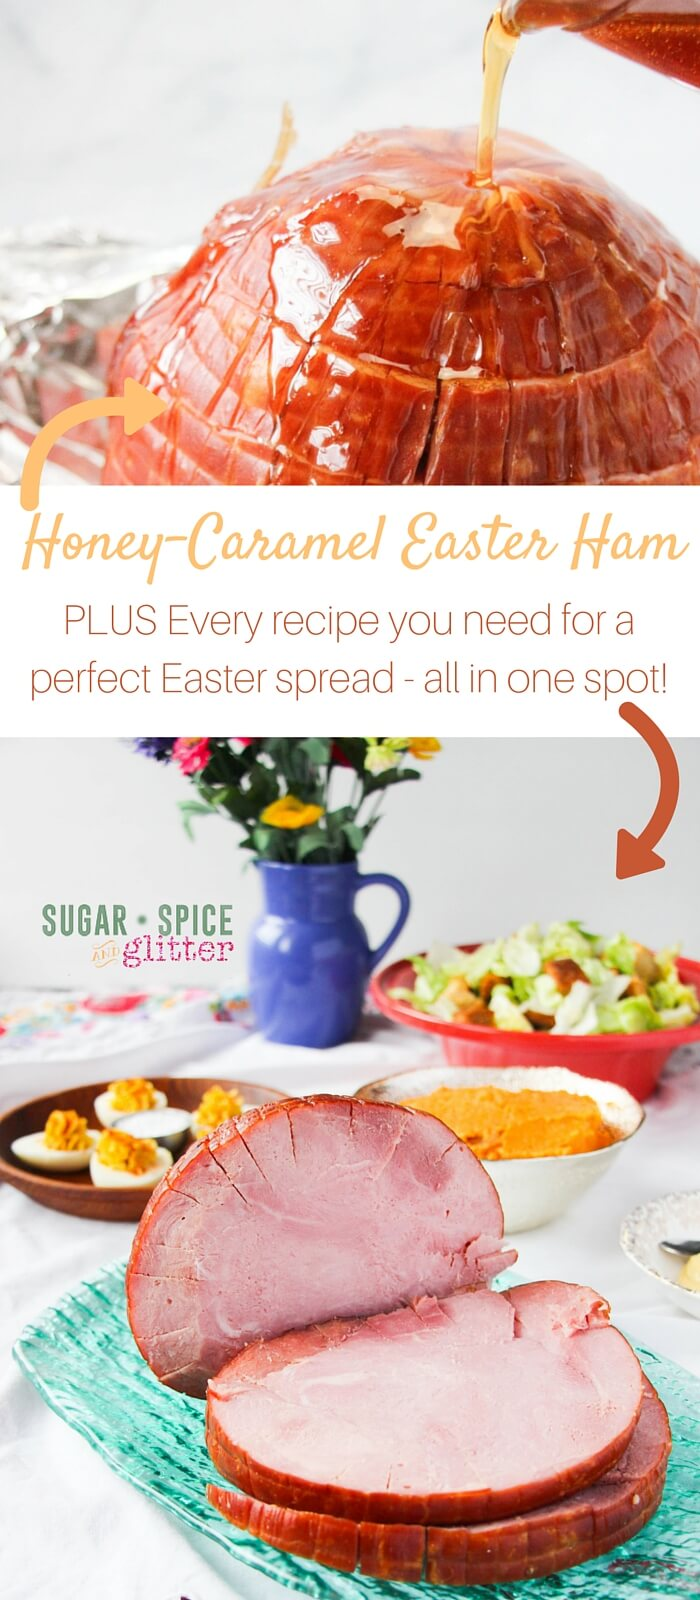 Honey Caramel Easter Ham, plus every side dish recipe you're going to need for the holidays. The perfect Easter meal, all planned out for you